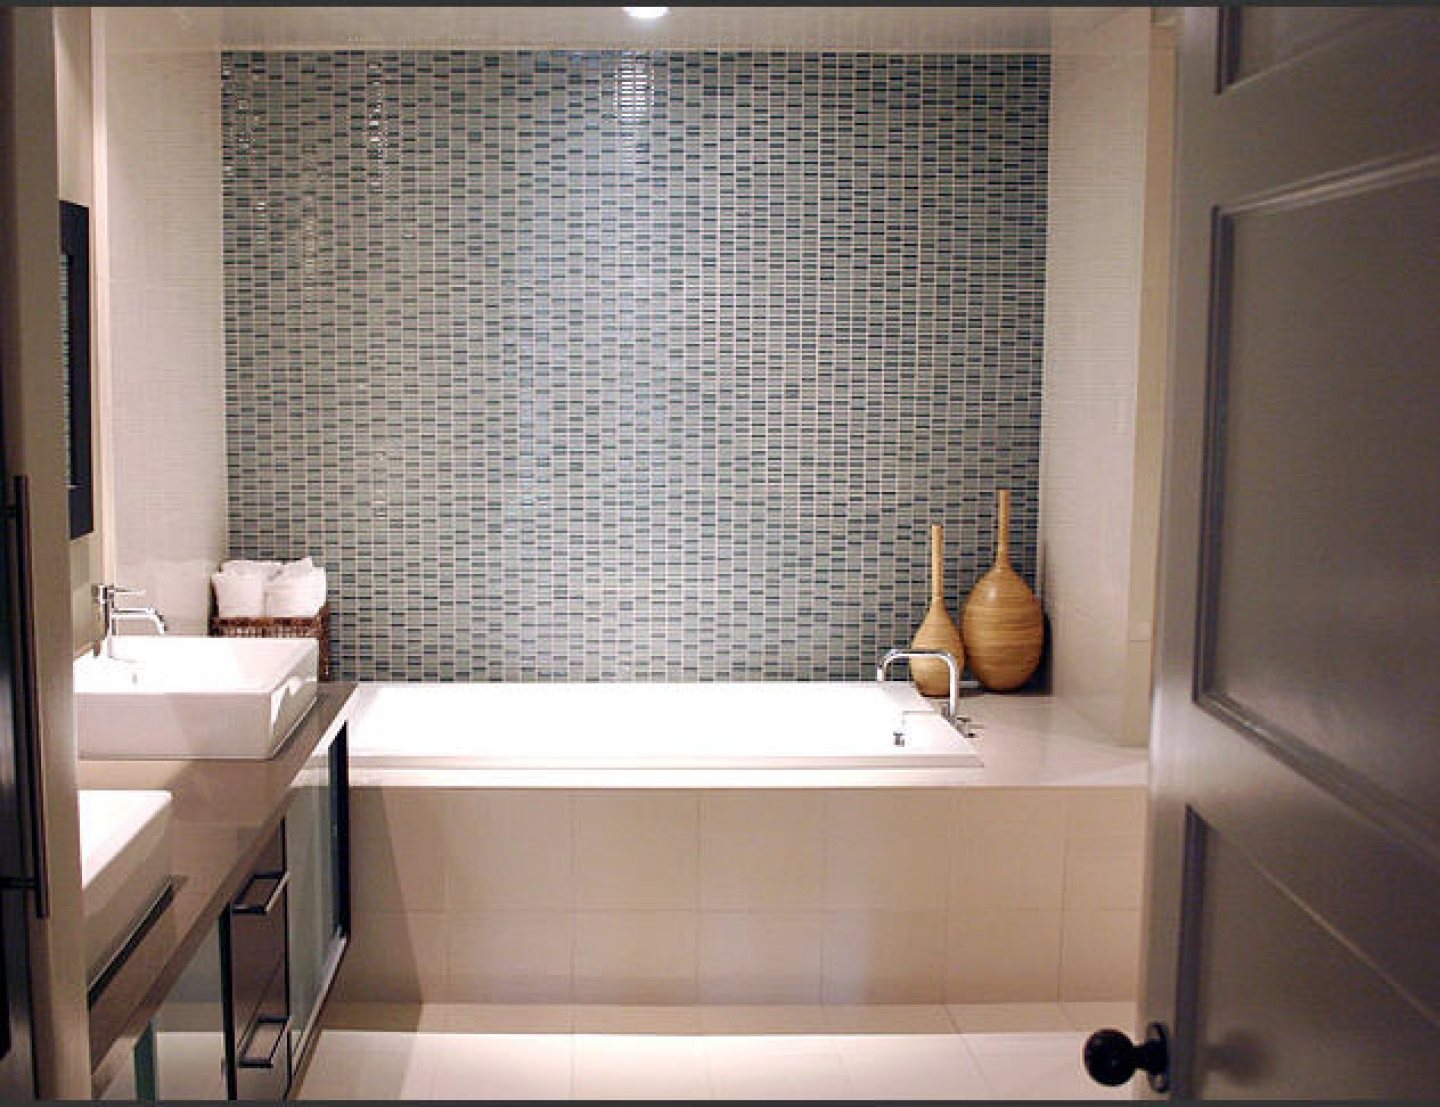 Modern bathroom ideas Photo - 1